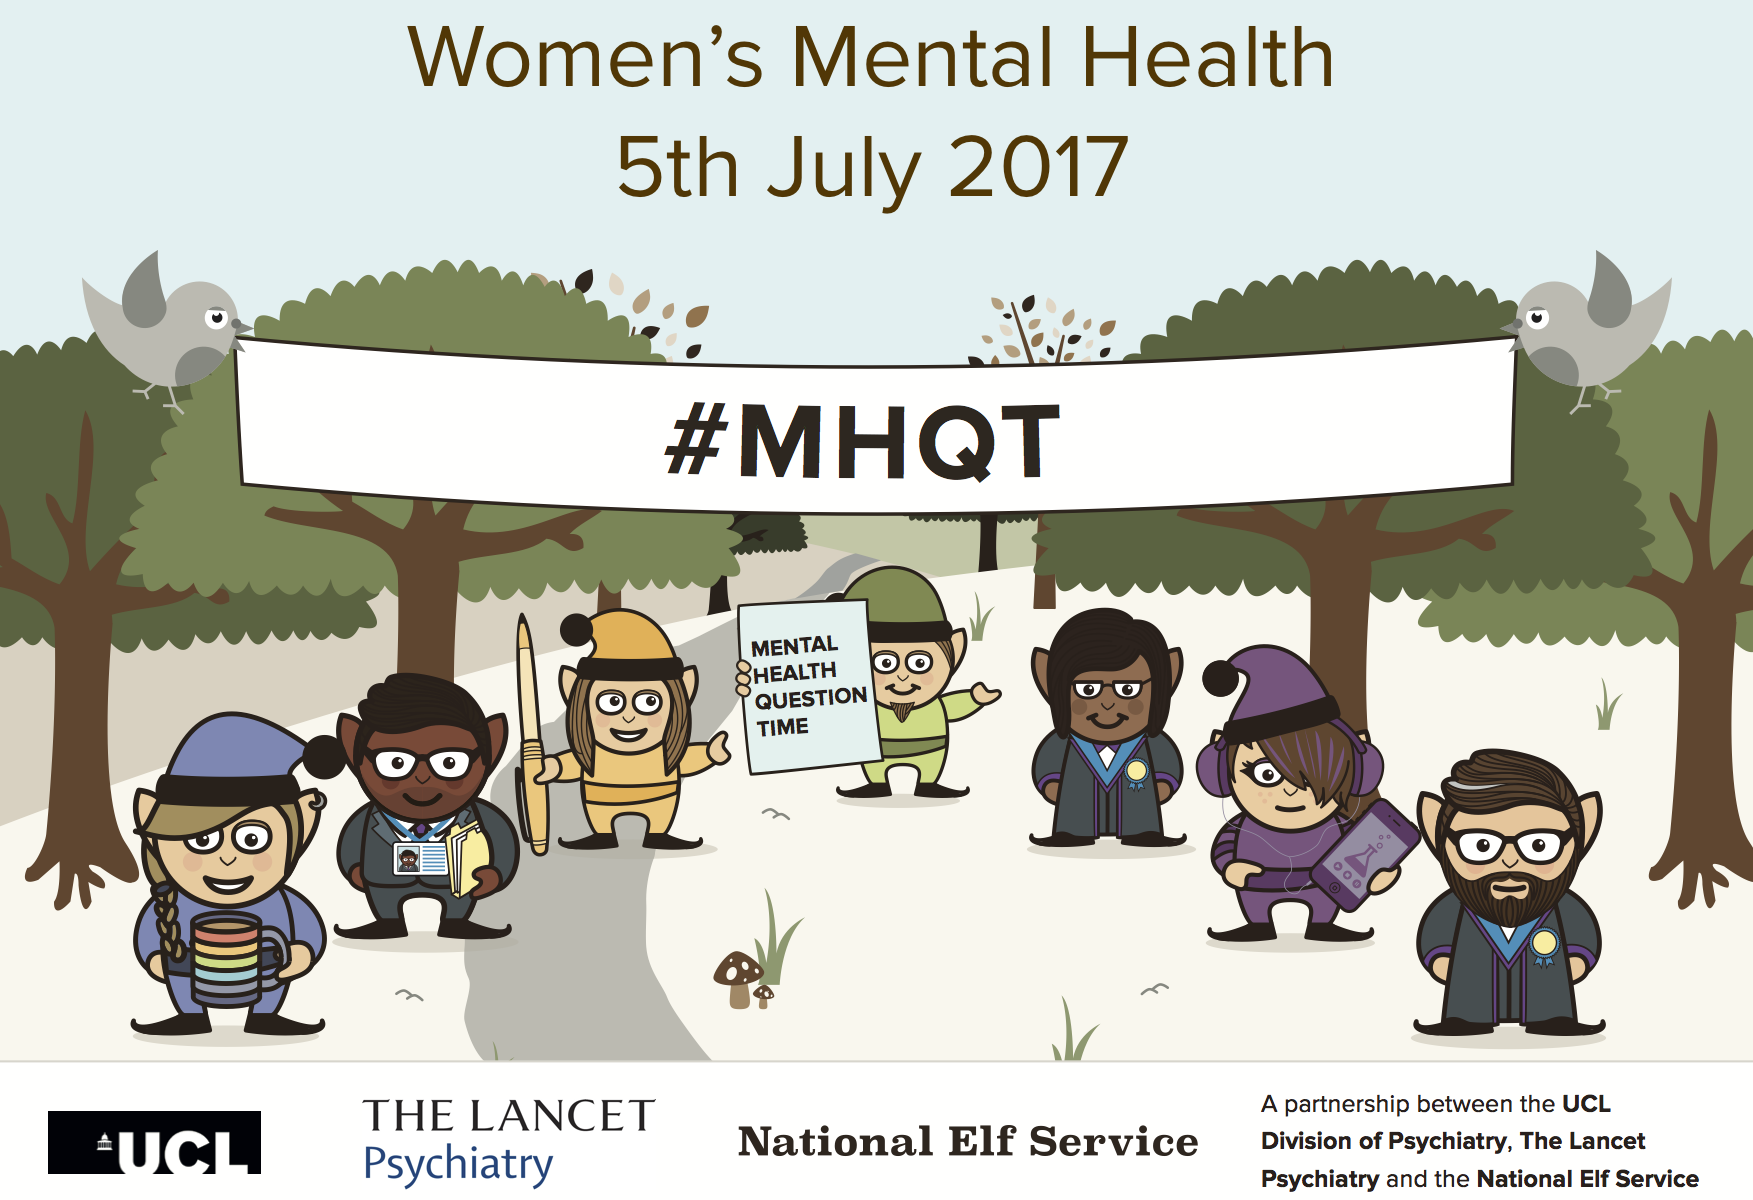 #MHQT Digital Mental Health, 15 Mar 2017